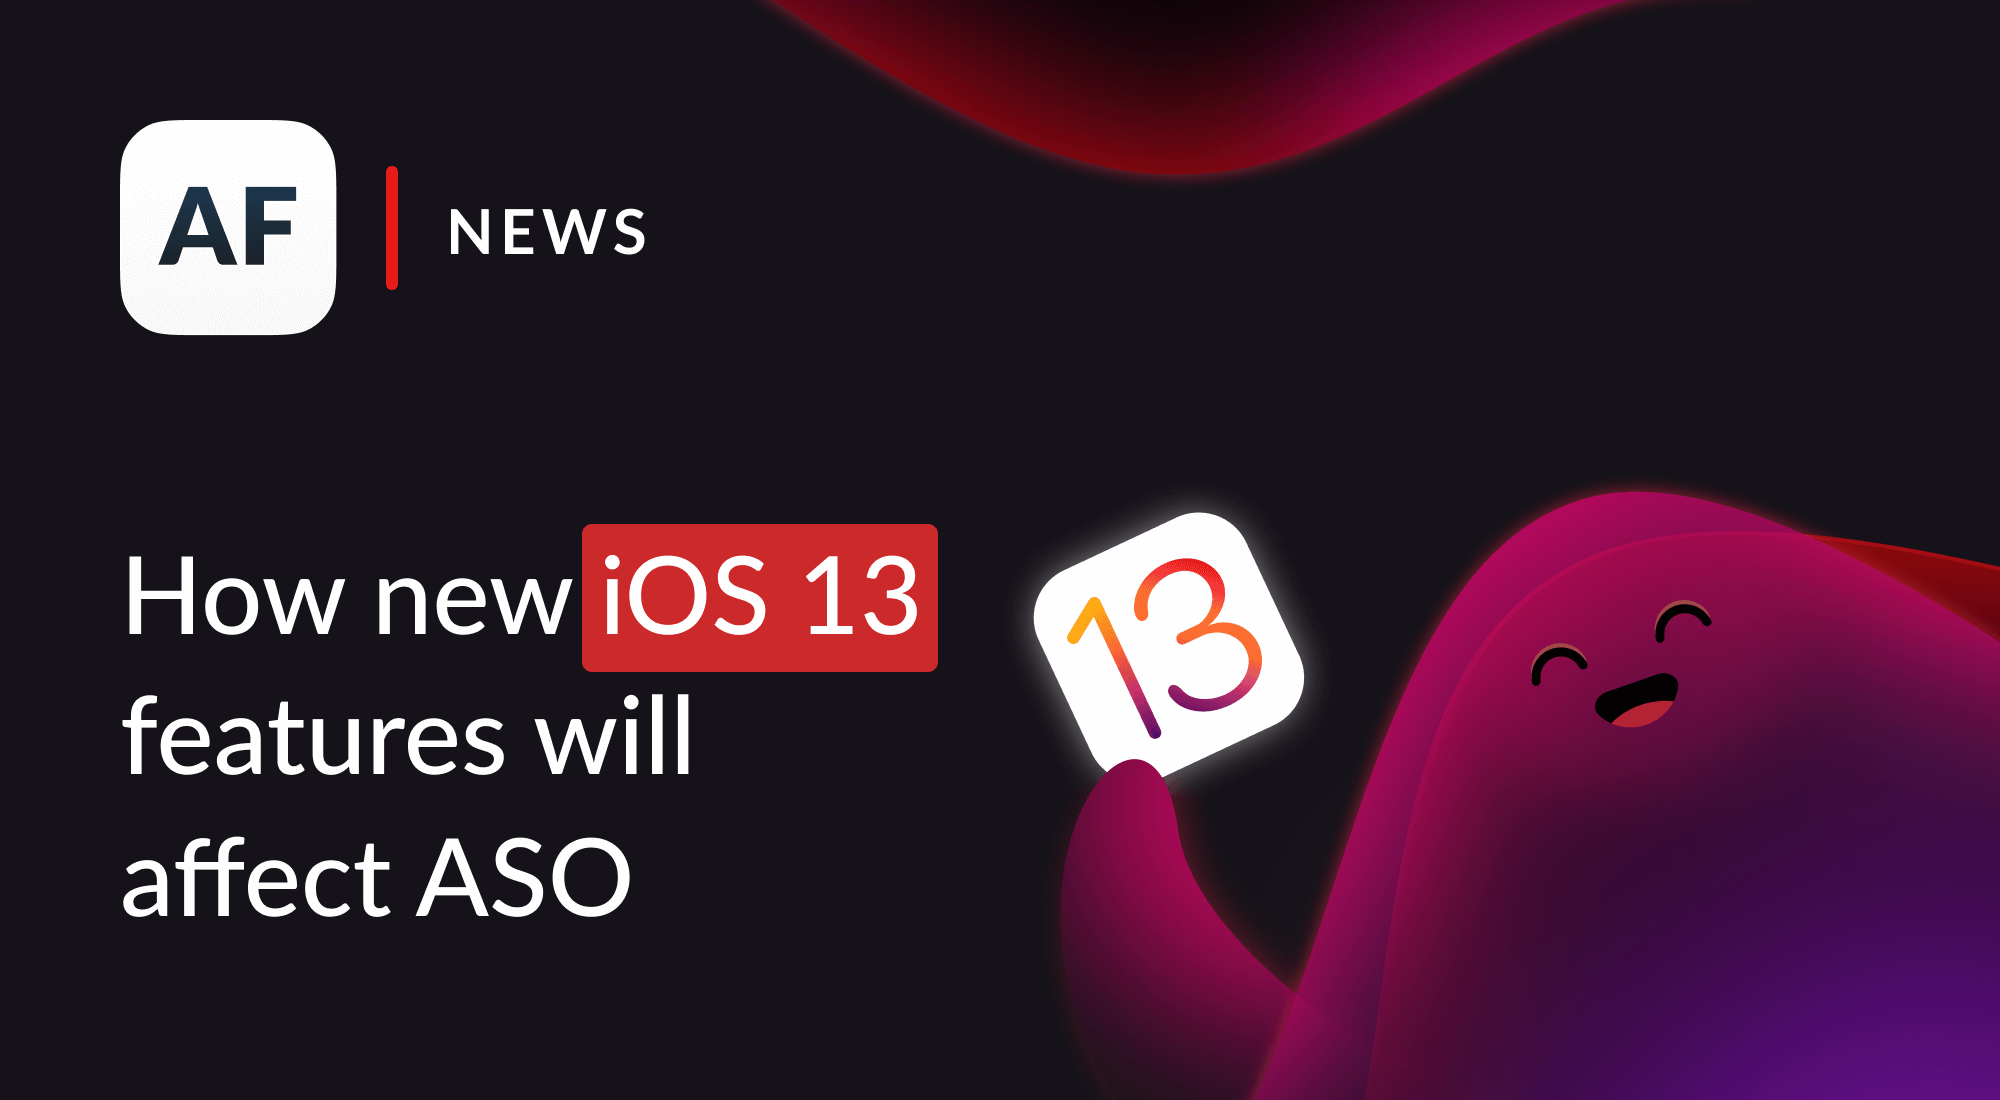 How new iOS 13 features will affect ASO